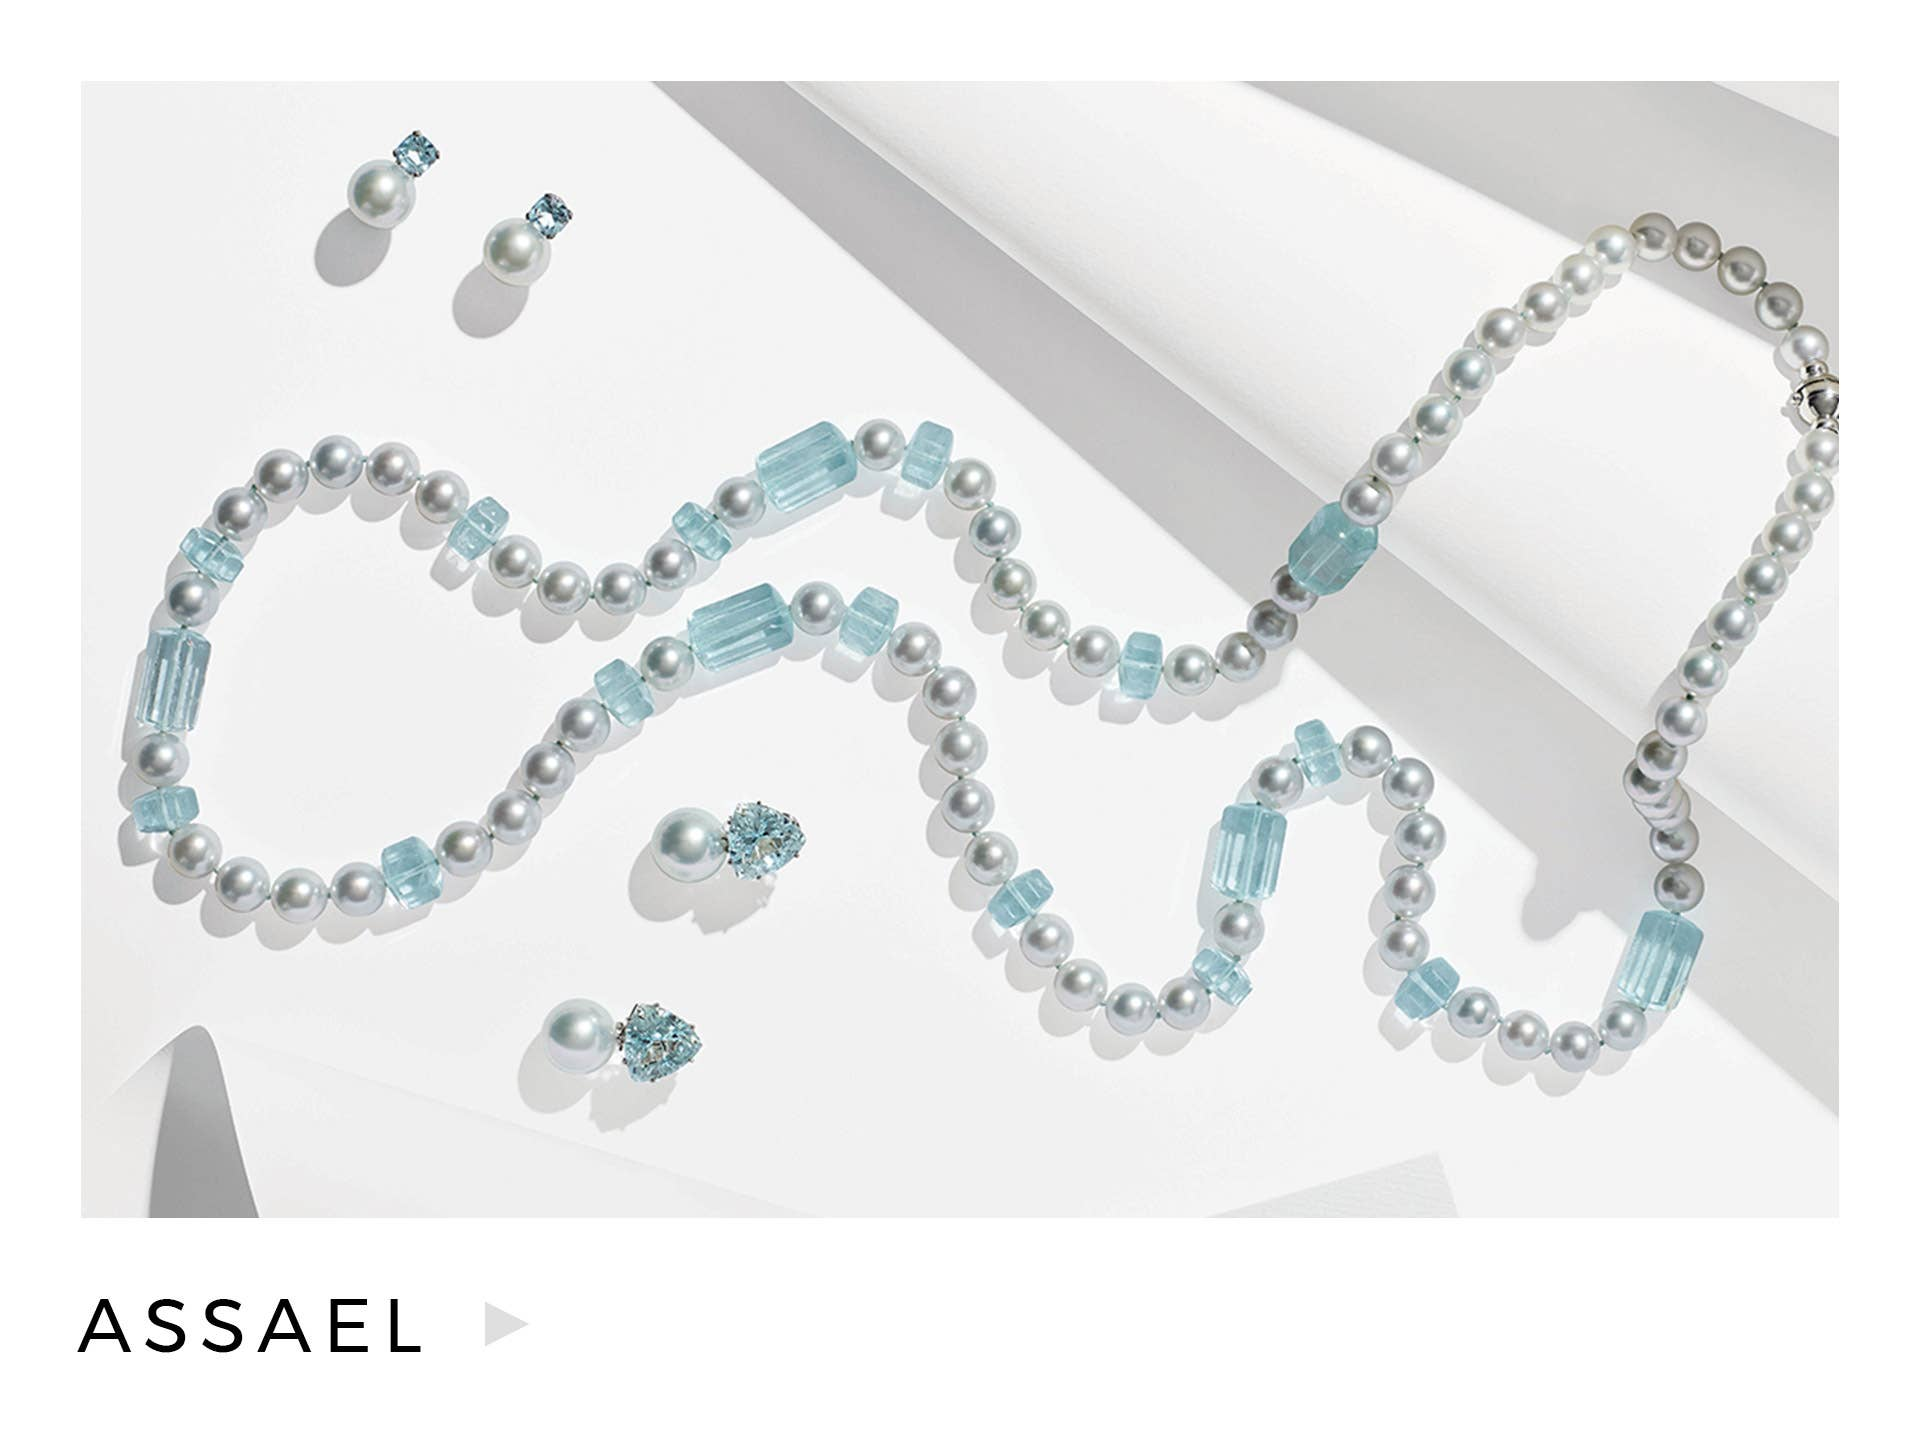 Shop our collection of Assael jewelry, including the featured pearl & aquamarine necklace.